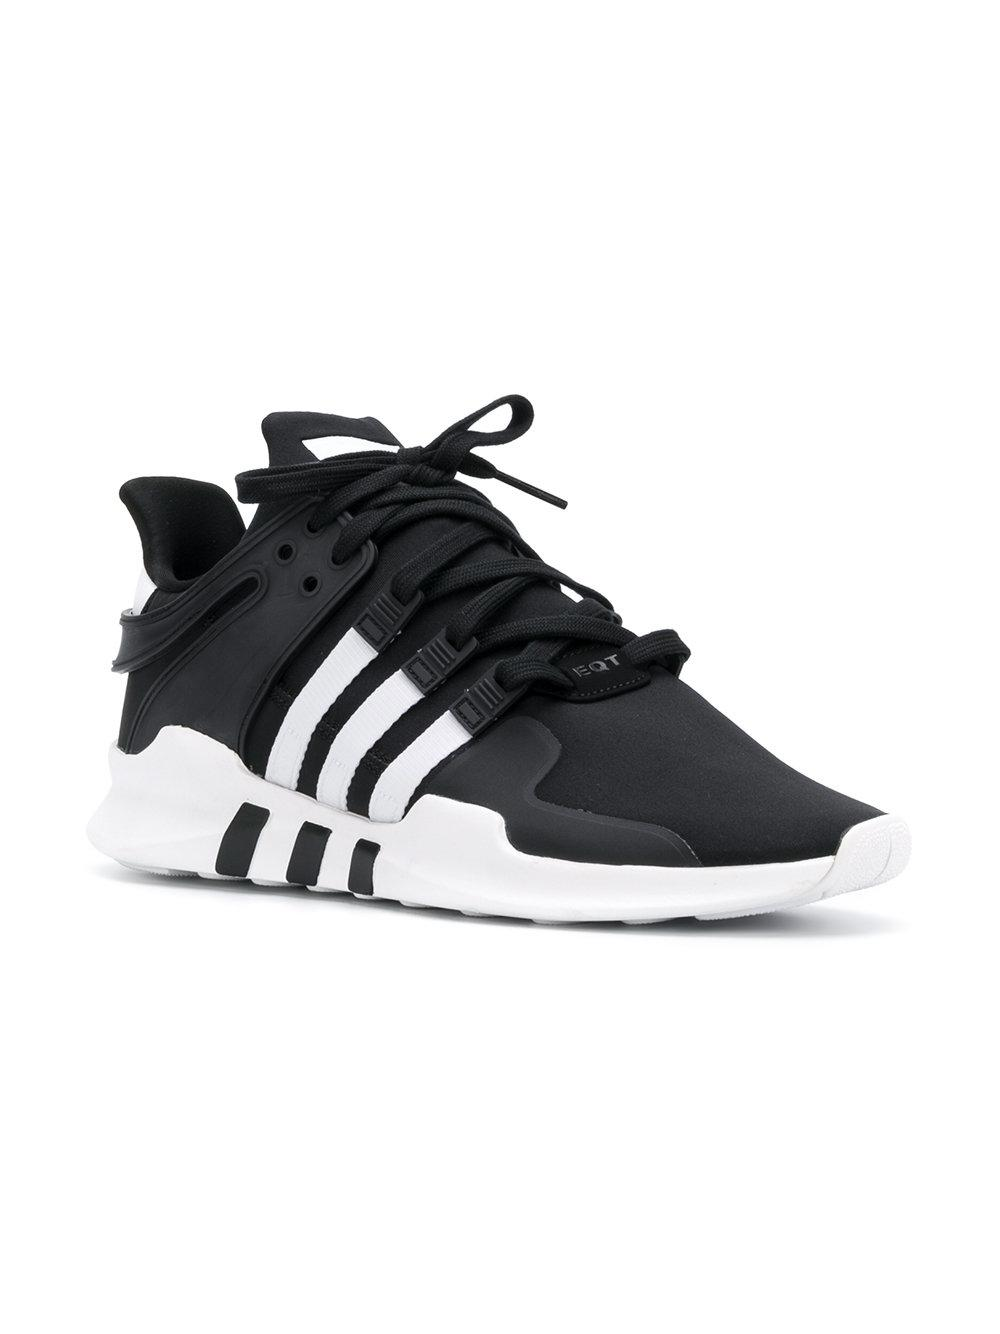 size 40 a6b40 87a06 Adidas - Black Eqt Support Adv Sneakers for Men - Lyst. View fullscreen